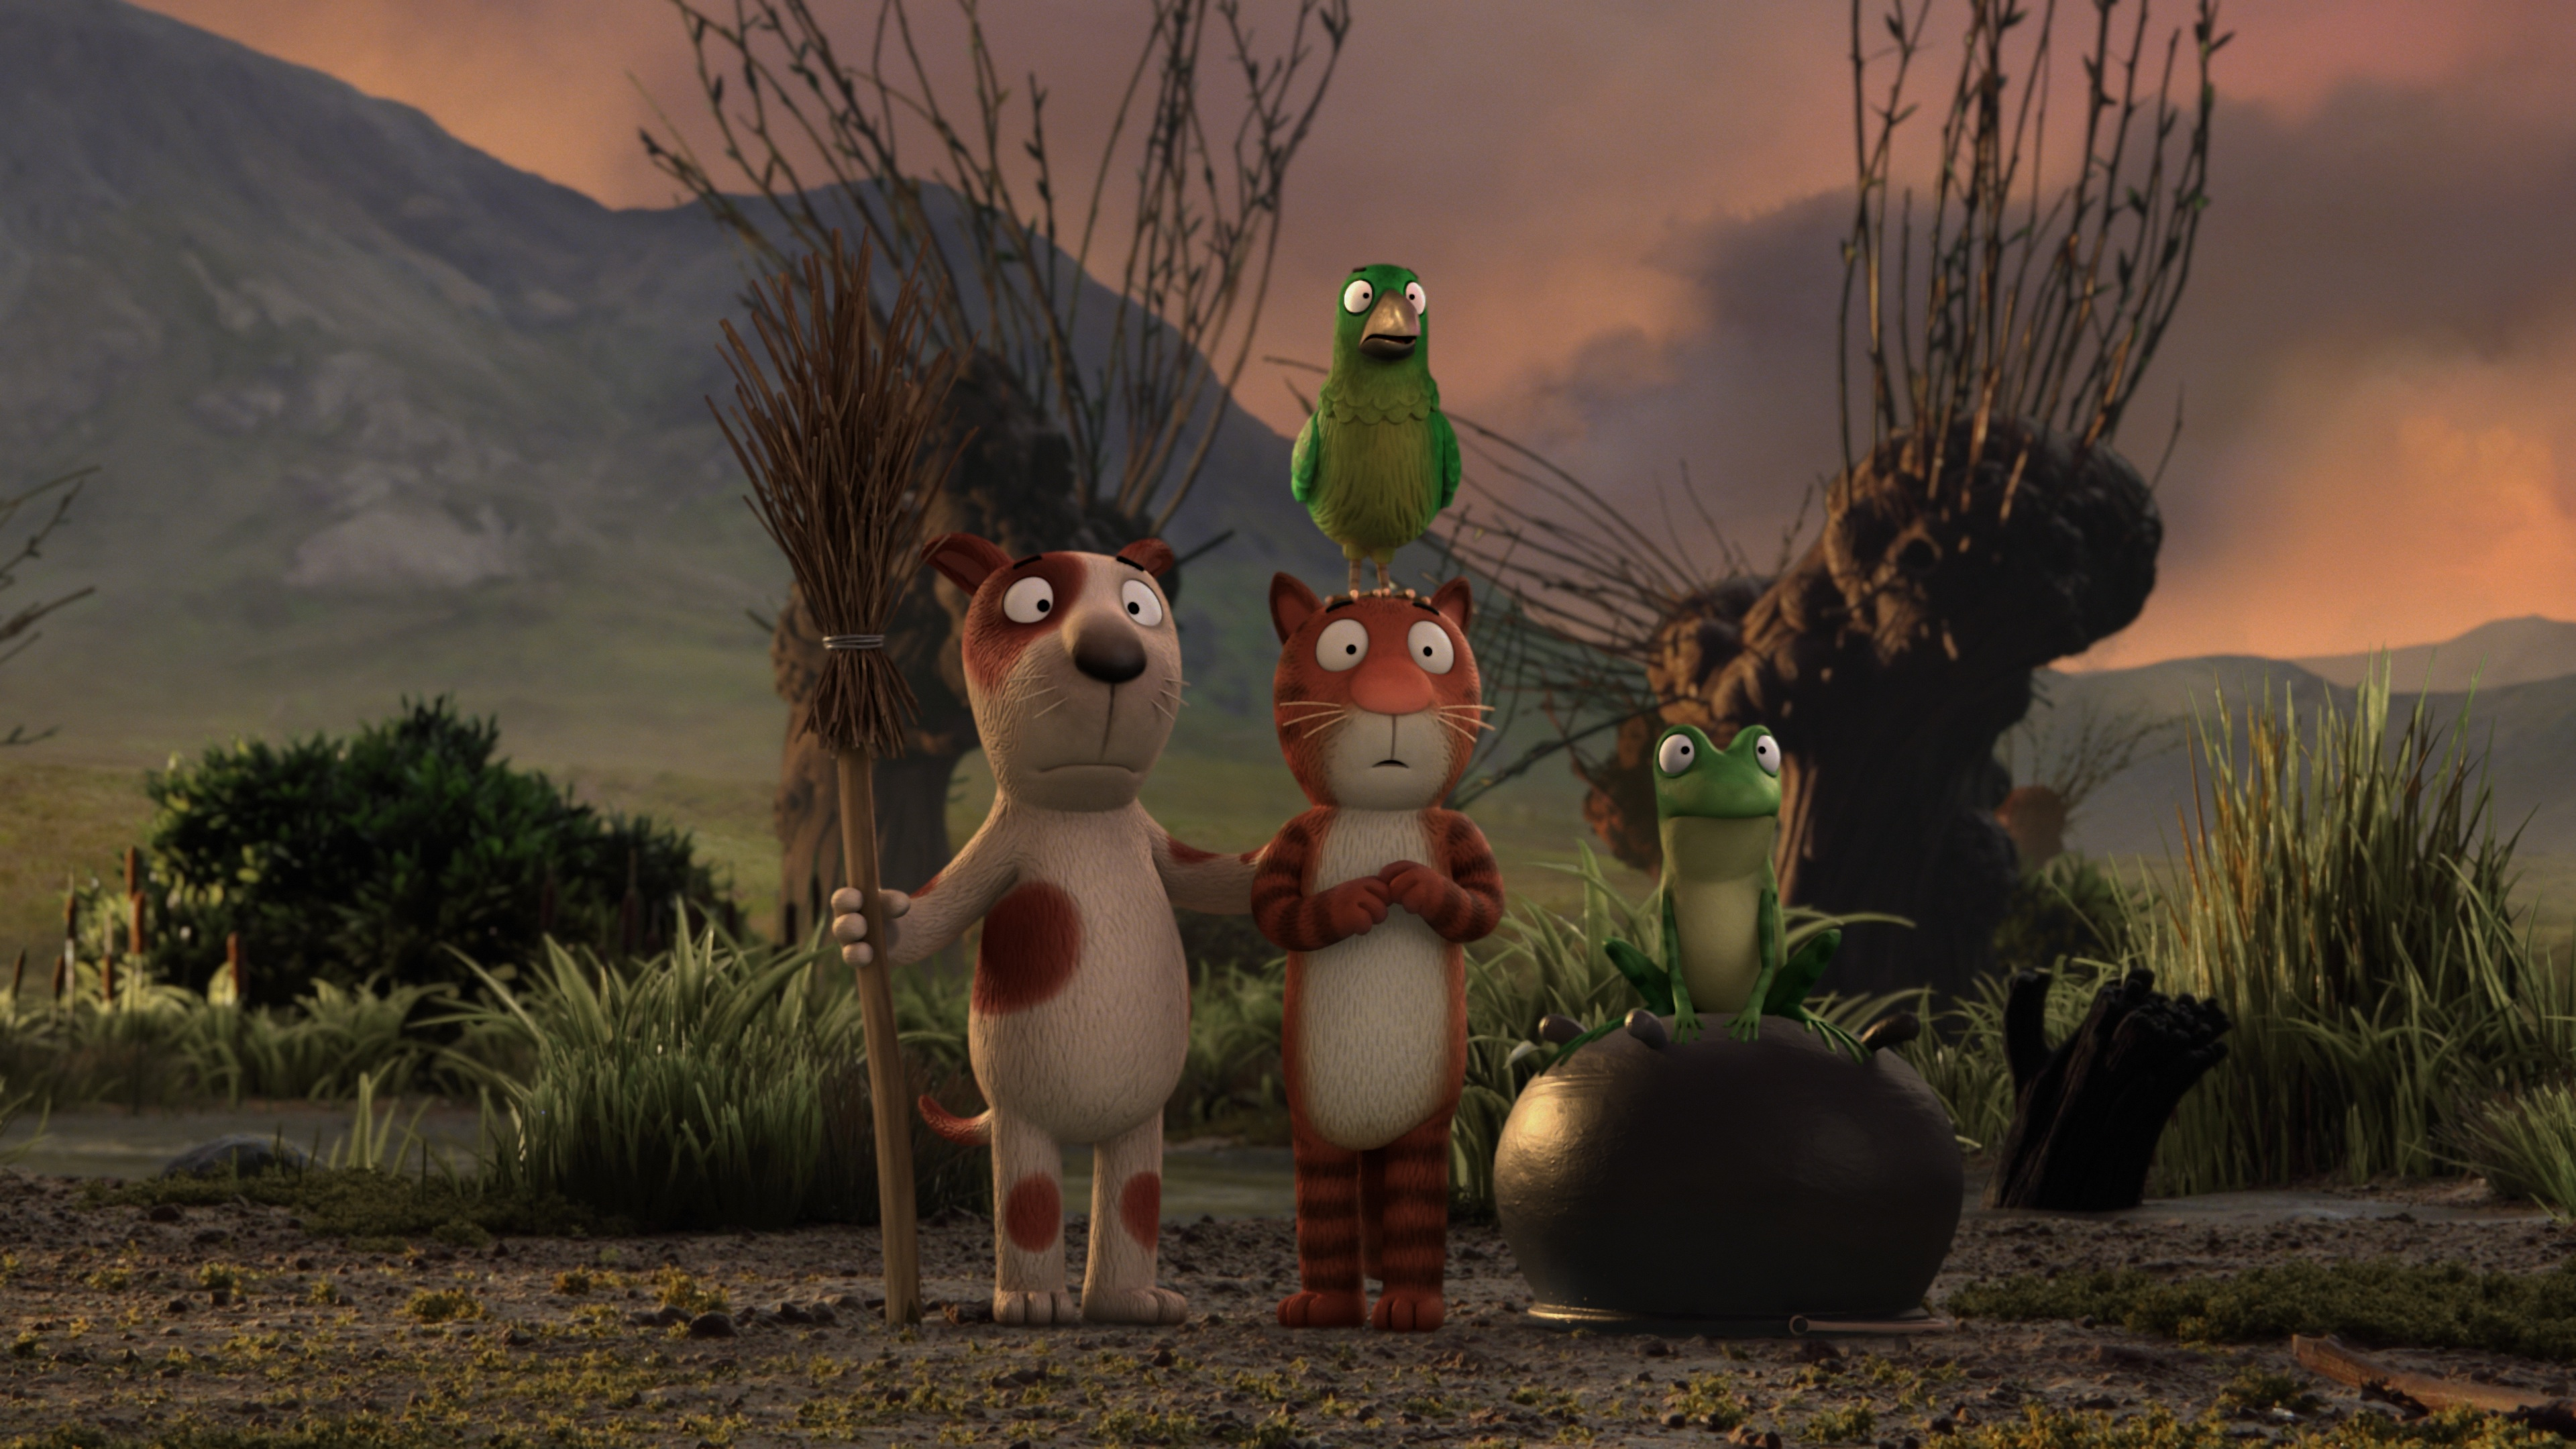 Exclusive Gallery From Bbc Ones Christmas Animation Room On The Broom . Part 73